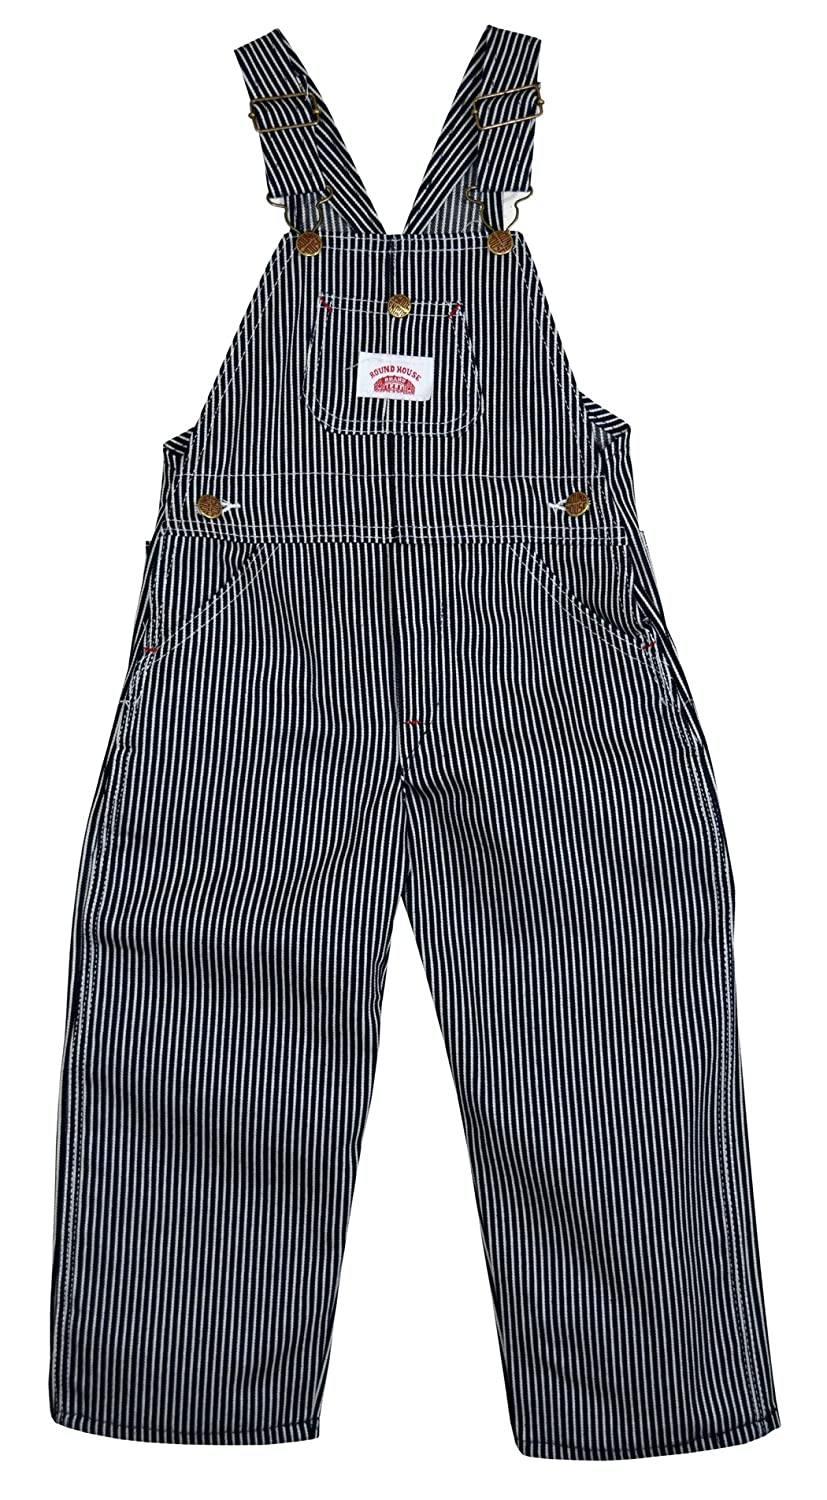 Round House Little Boys Stripe Bib Overall